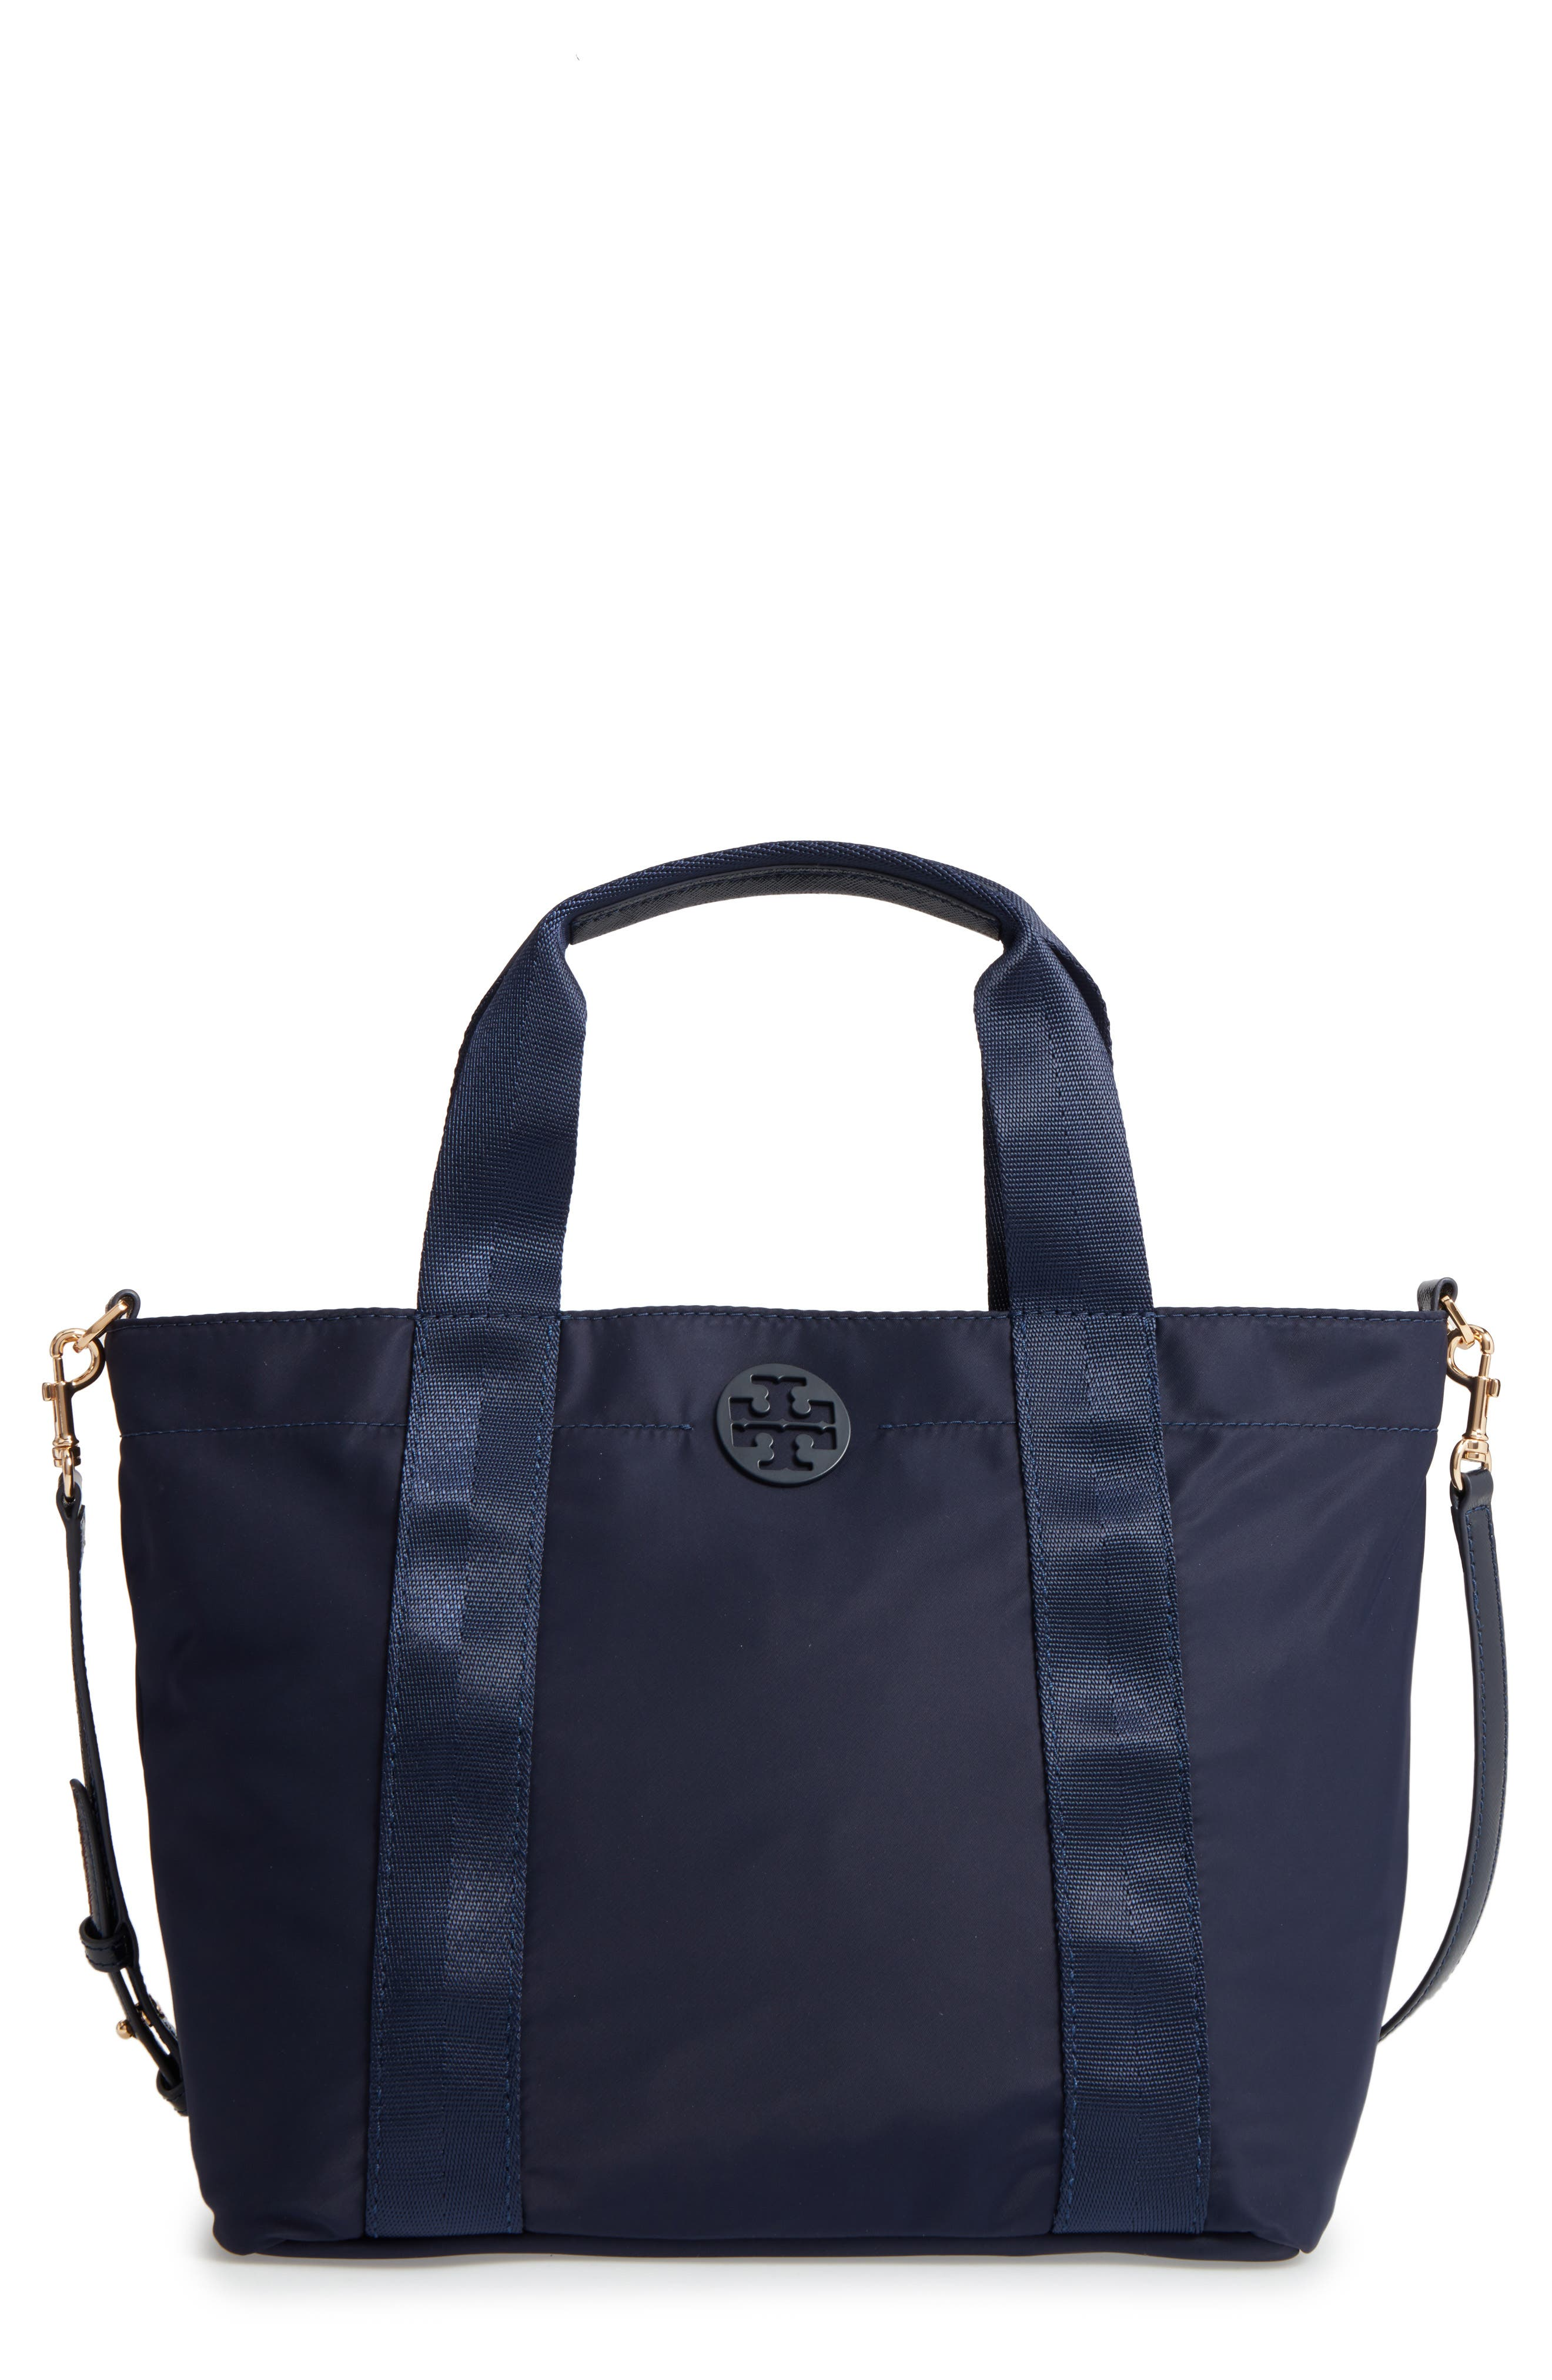 Alternate Image 1 Selected - Tory Burch Small Quinn Nylon Tote